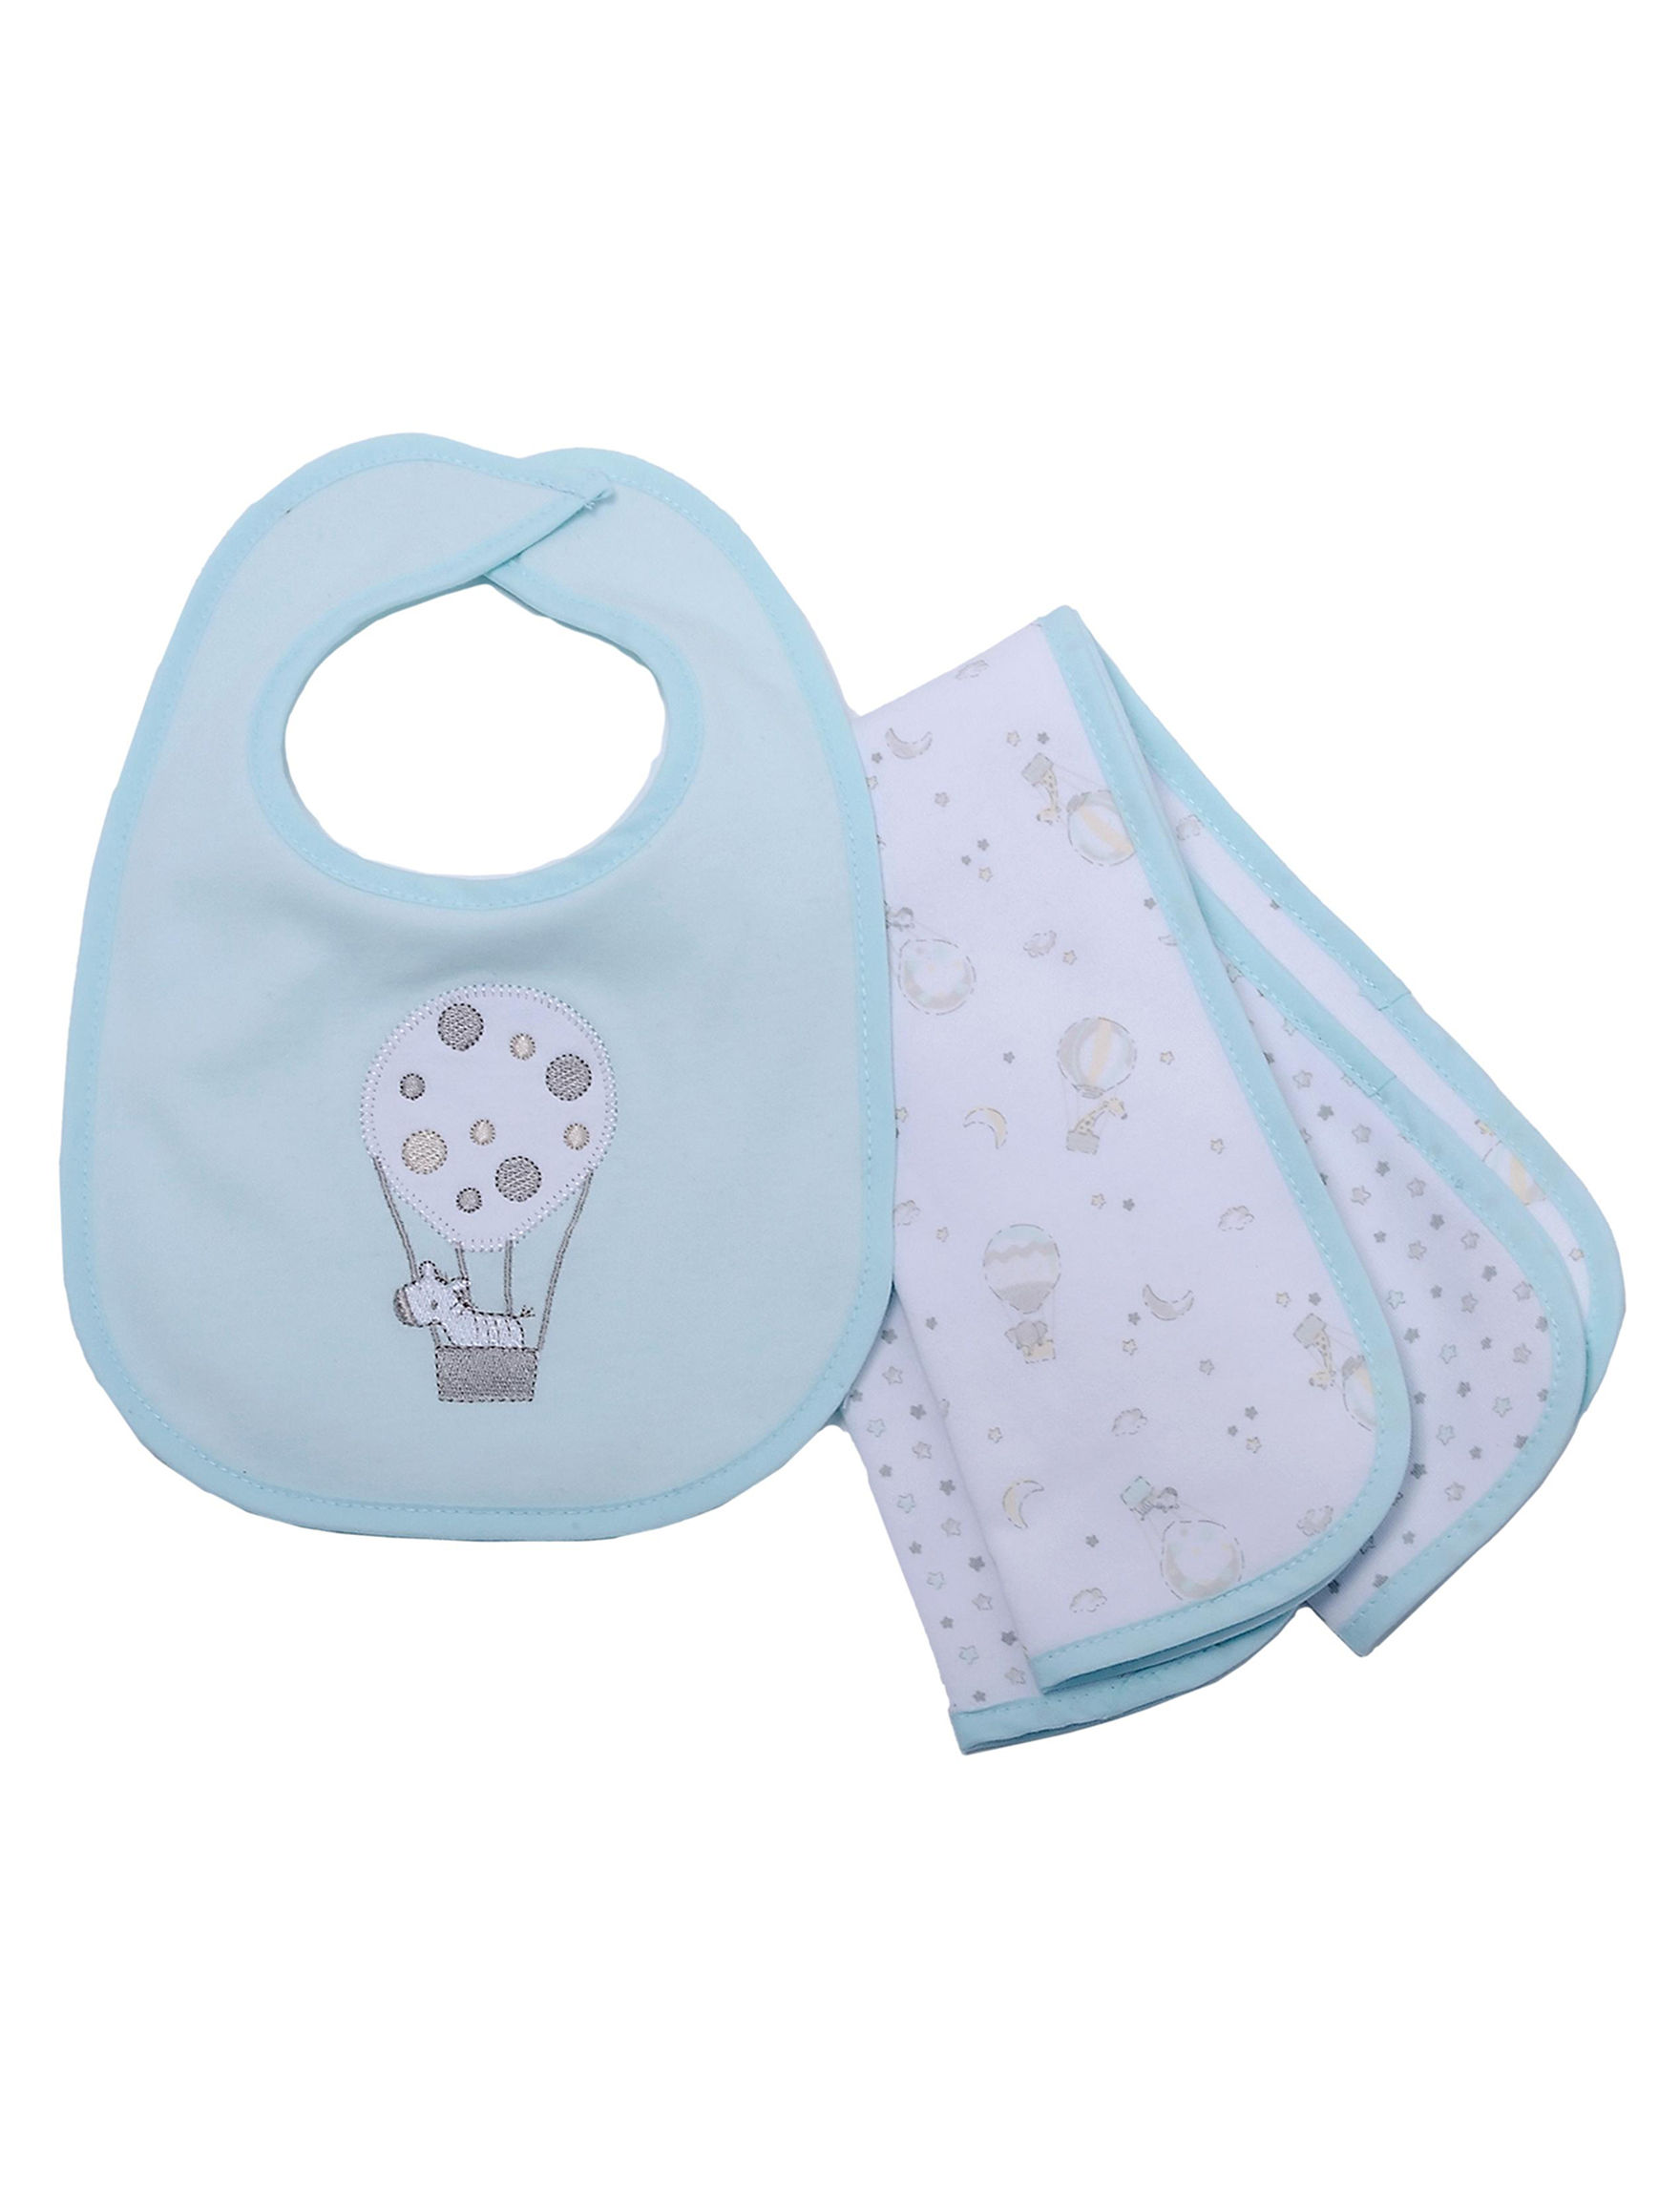 Kyle & Deena Mint Bibs & Burp Cloths